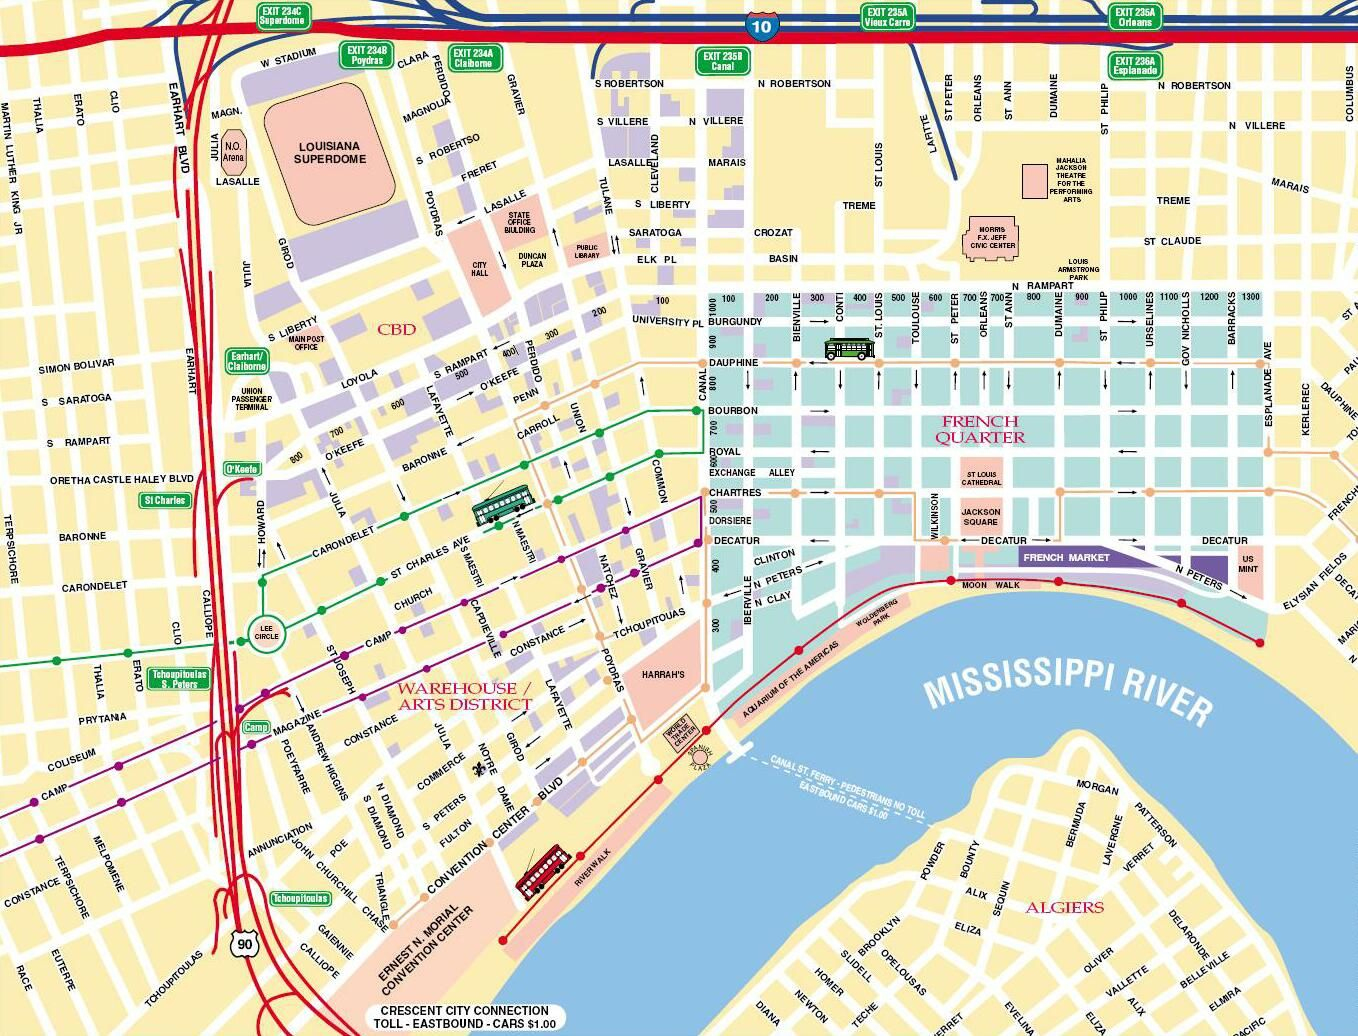 map of new orleans – New Orleans French Quarter Tourist Map